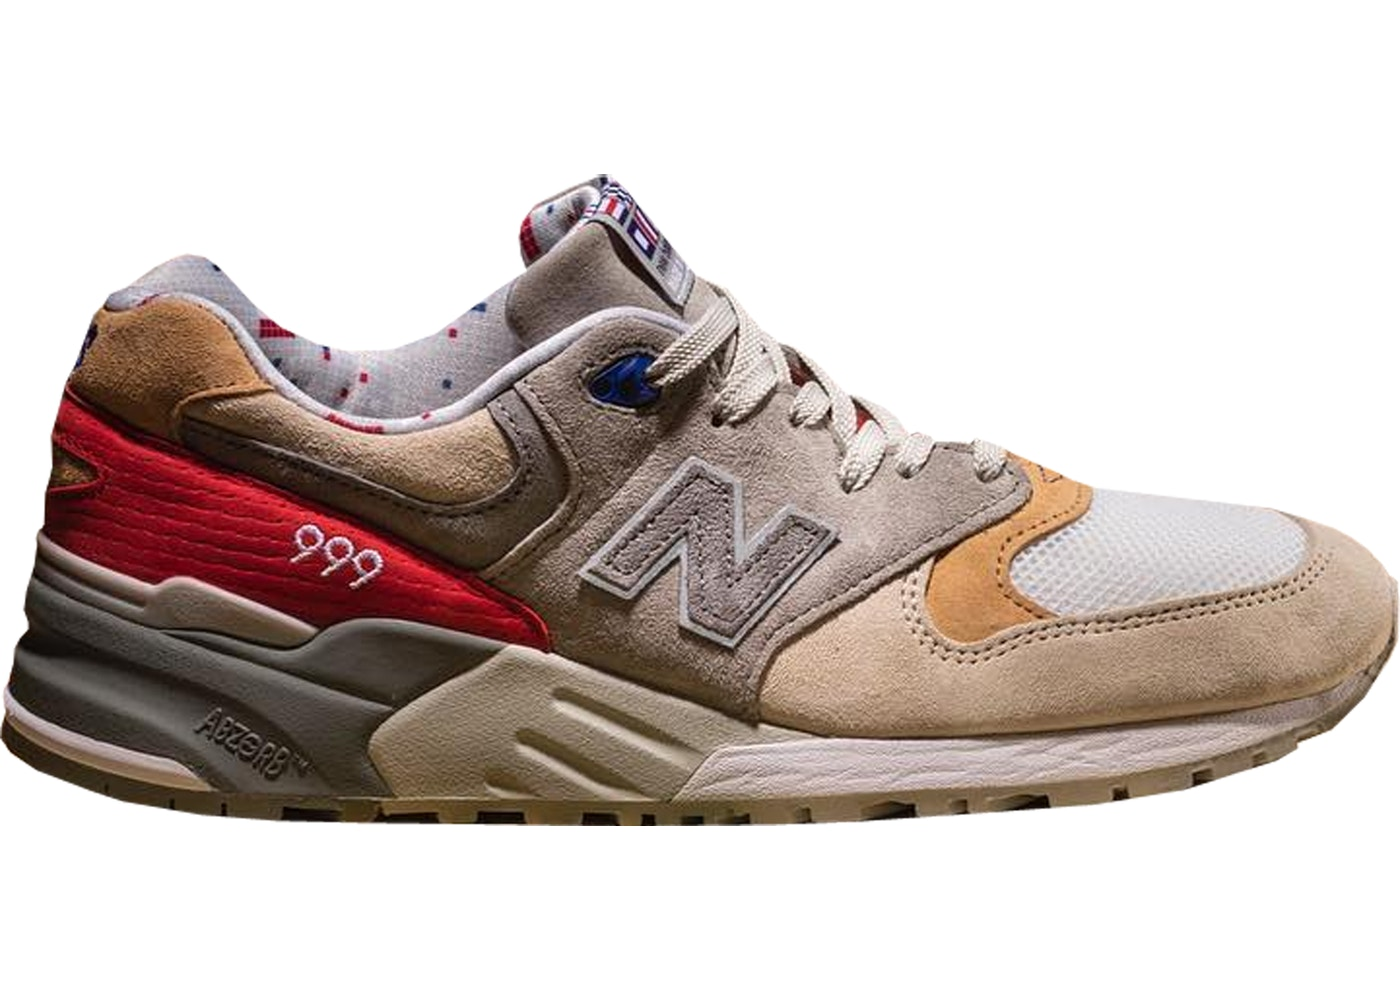 new arrival 5128d 35a3c Buy New Balance Size 4 Shoes & Deadstock Sneakers